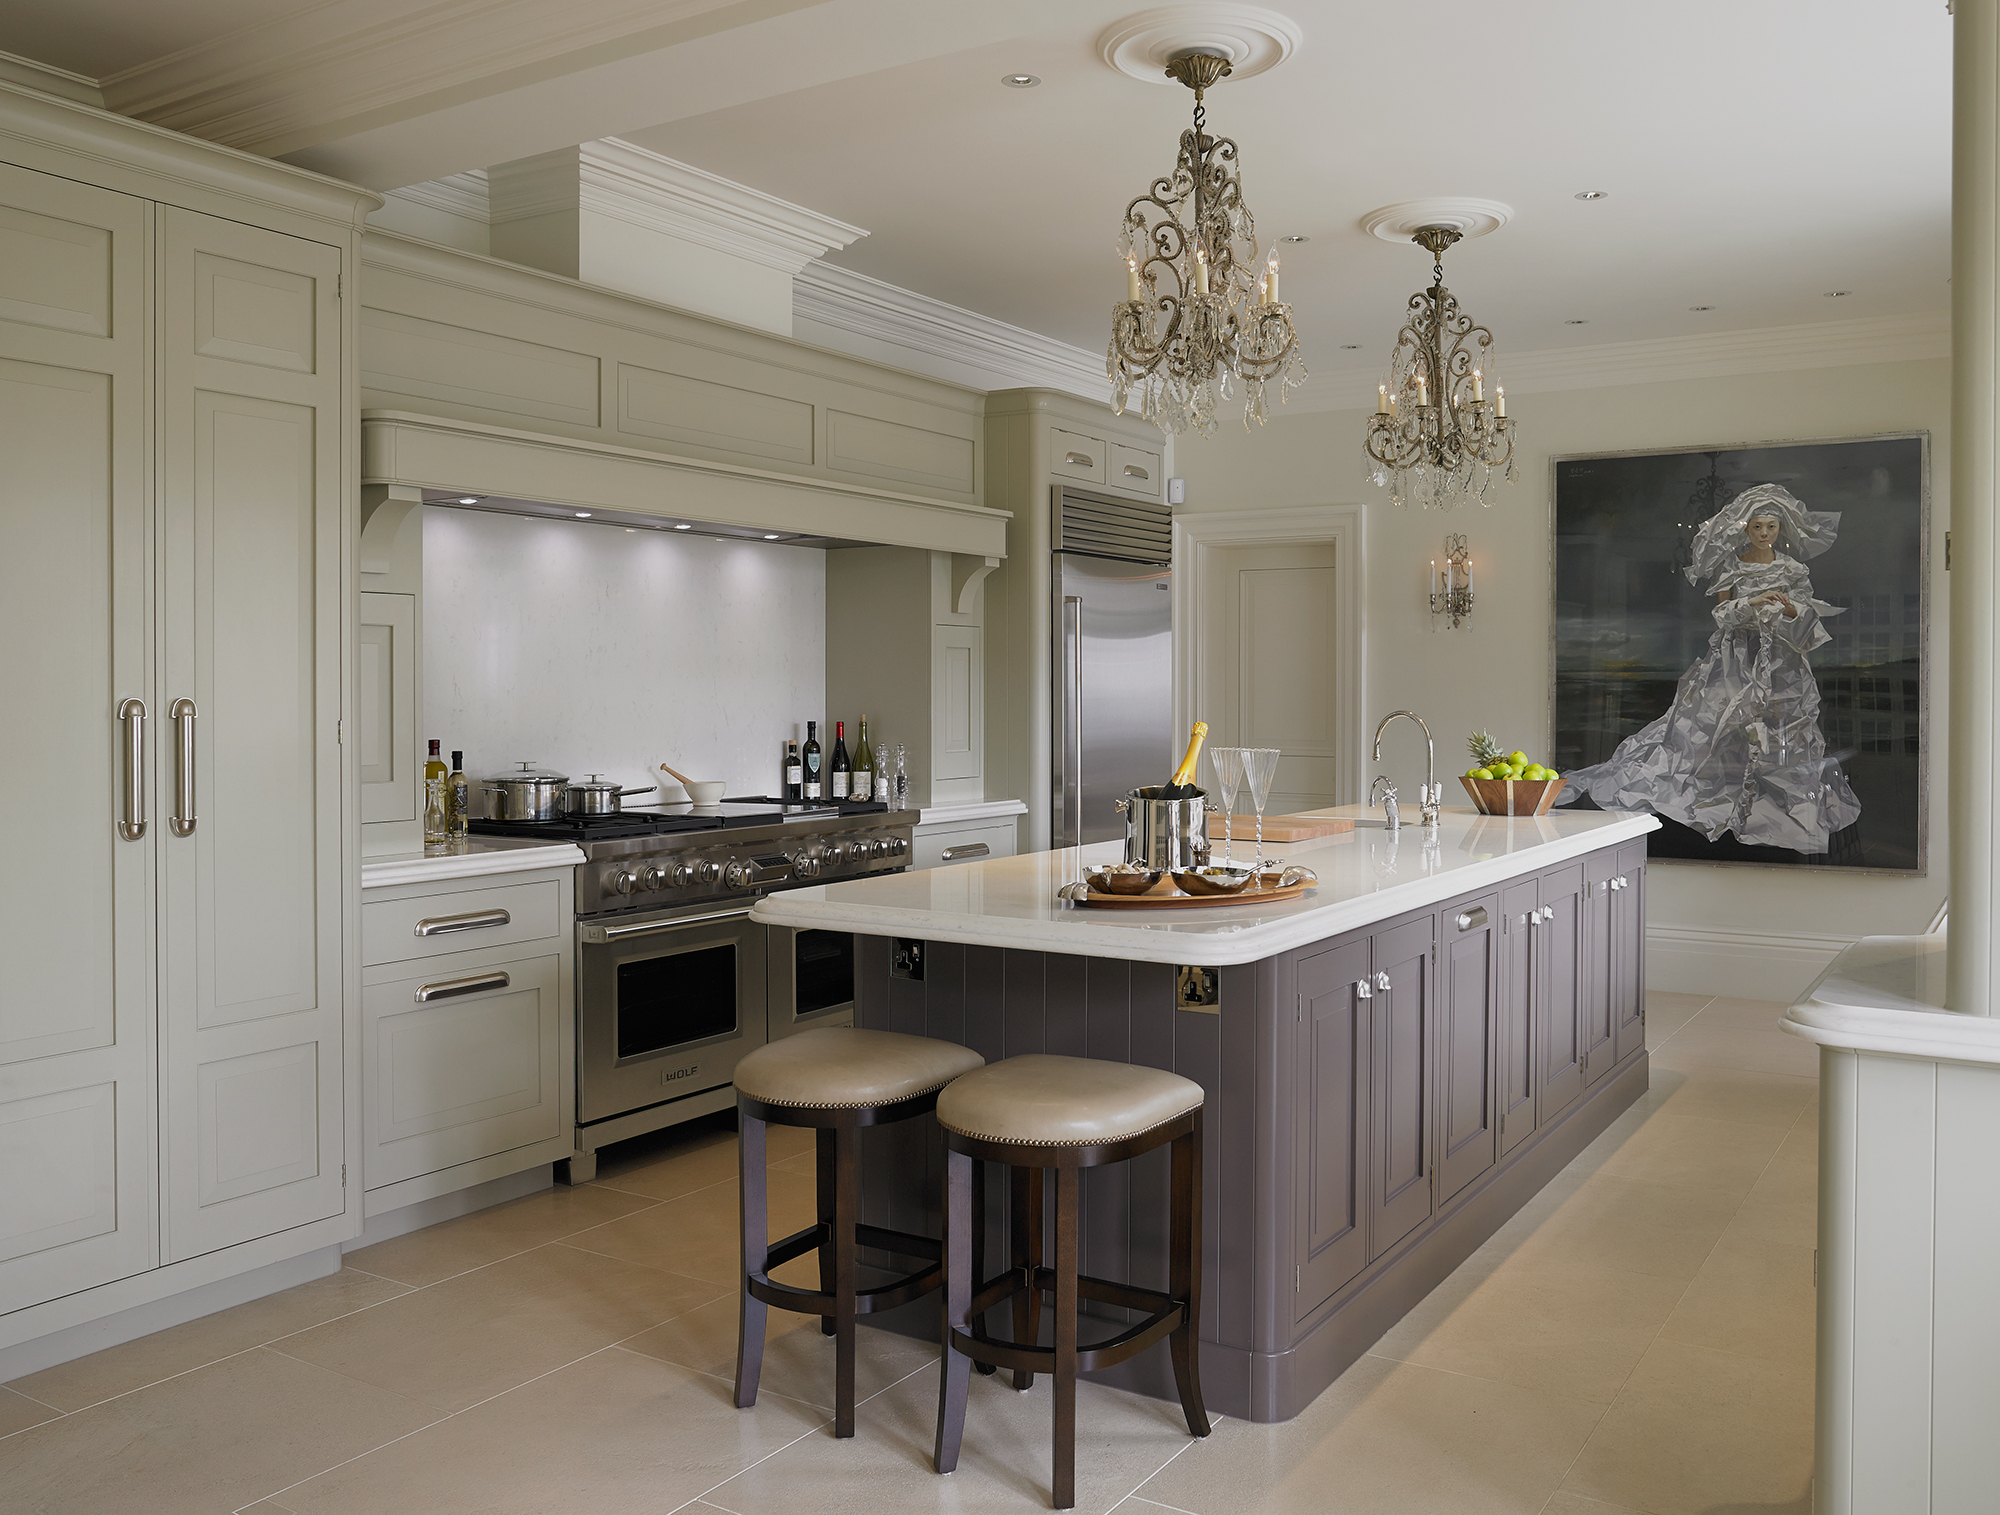 Mark wilkinson furniture collection english classic kitchen 5